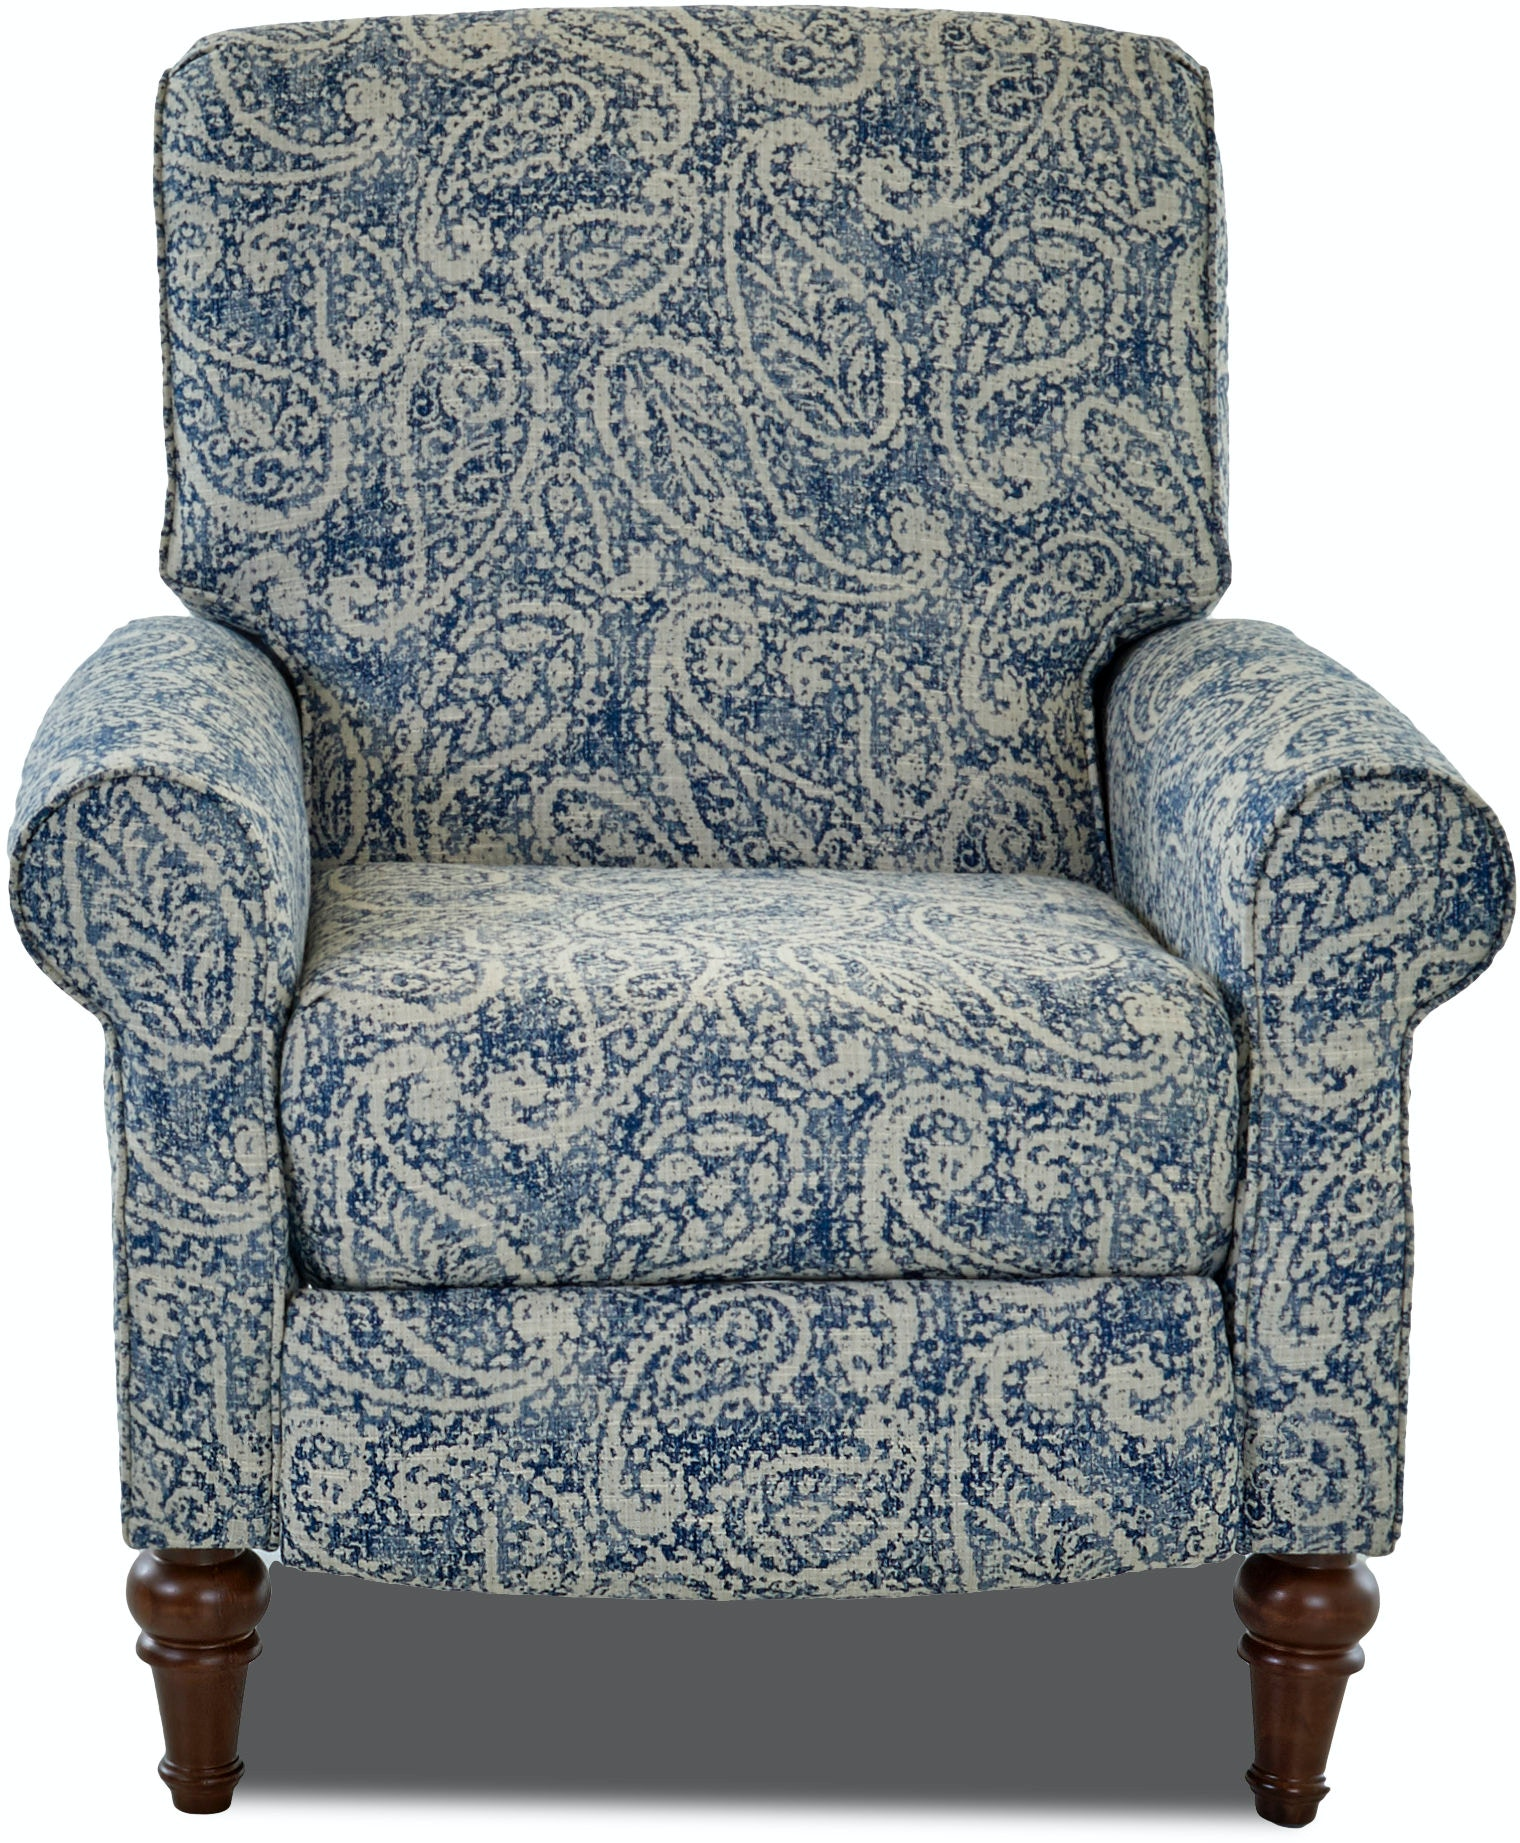 20508 Hlrcklaussner Reclining Chair Karl S